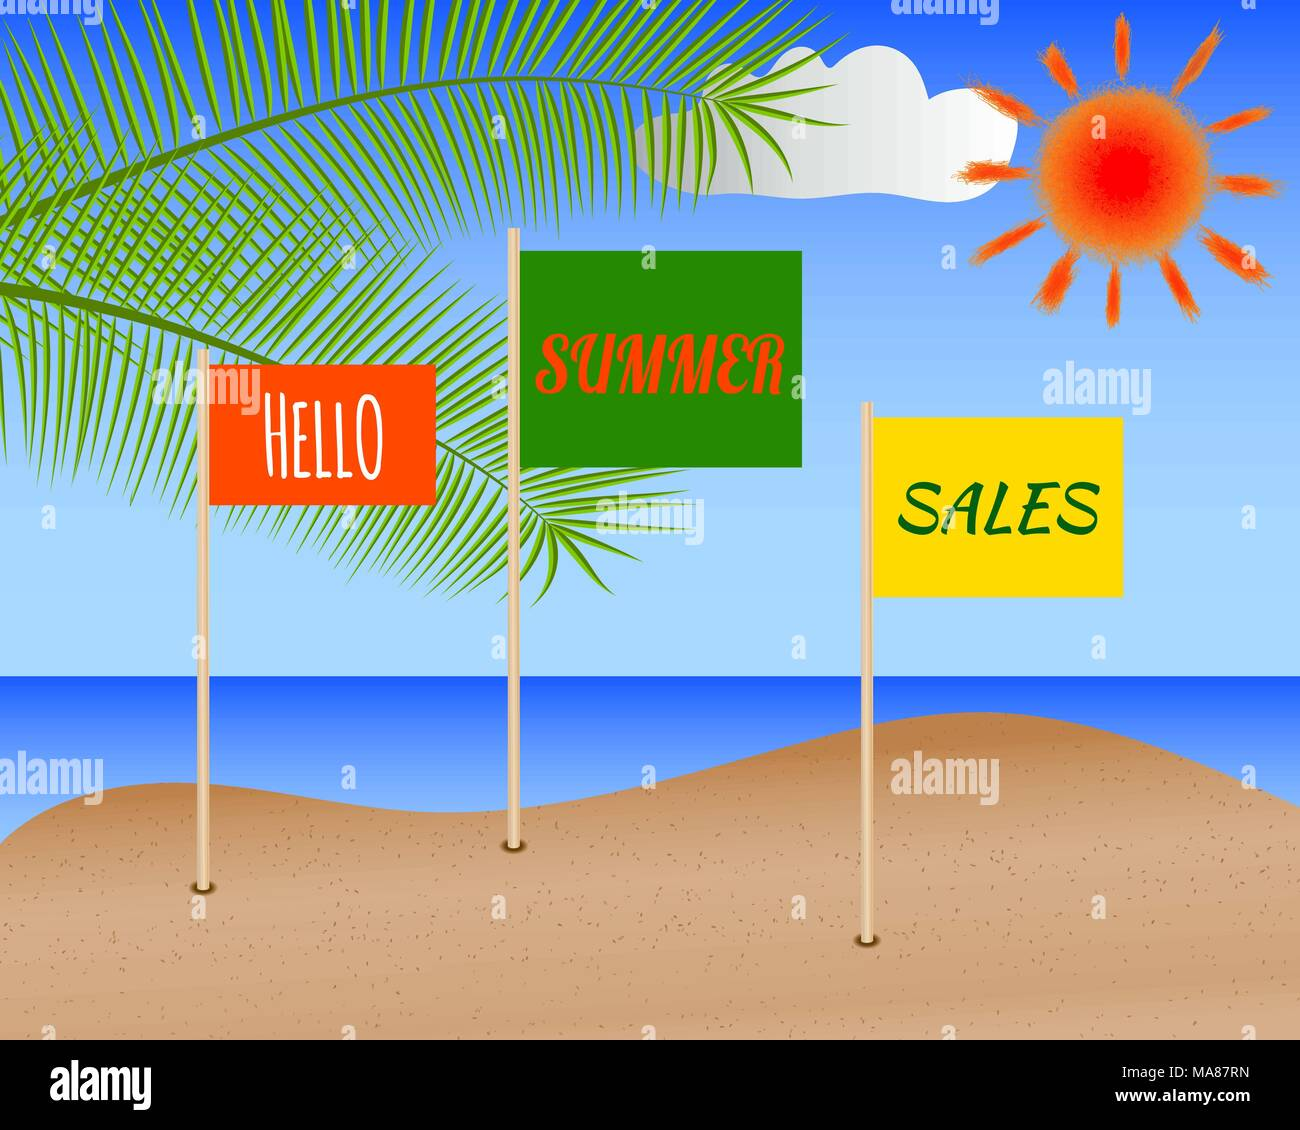 Summer shopping poster. Sale discount banner with seascape, sun, palm leaves and flags with lettering Hello summer sales - Stock Image